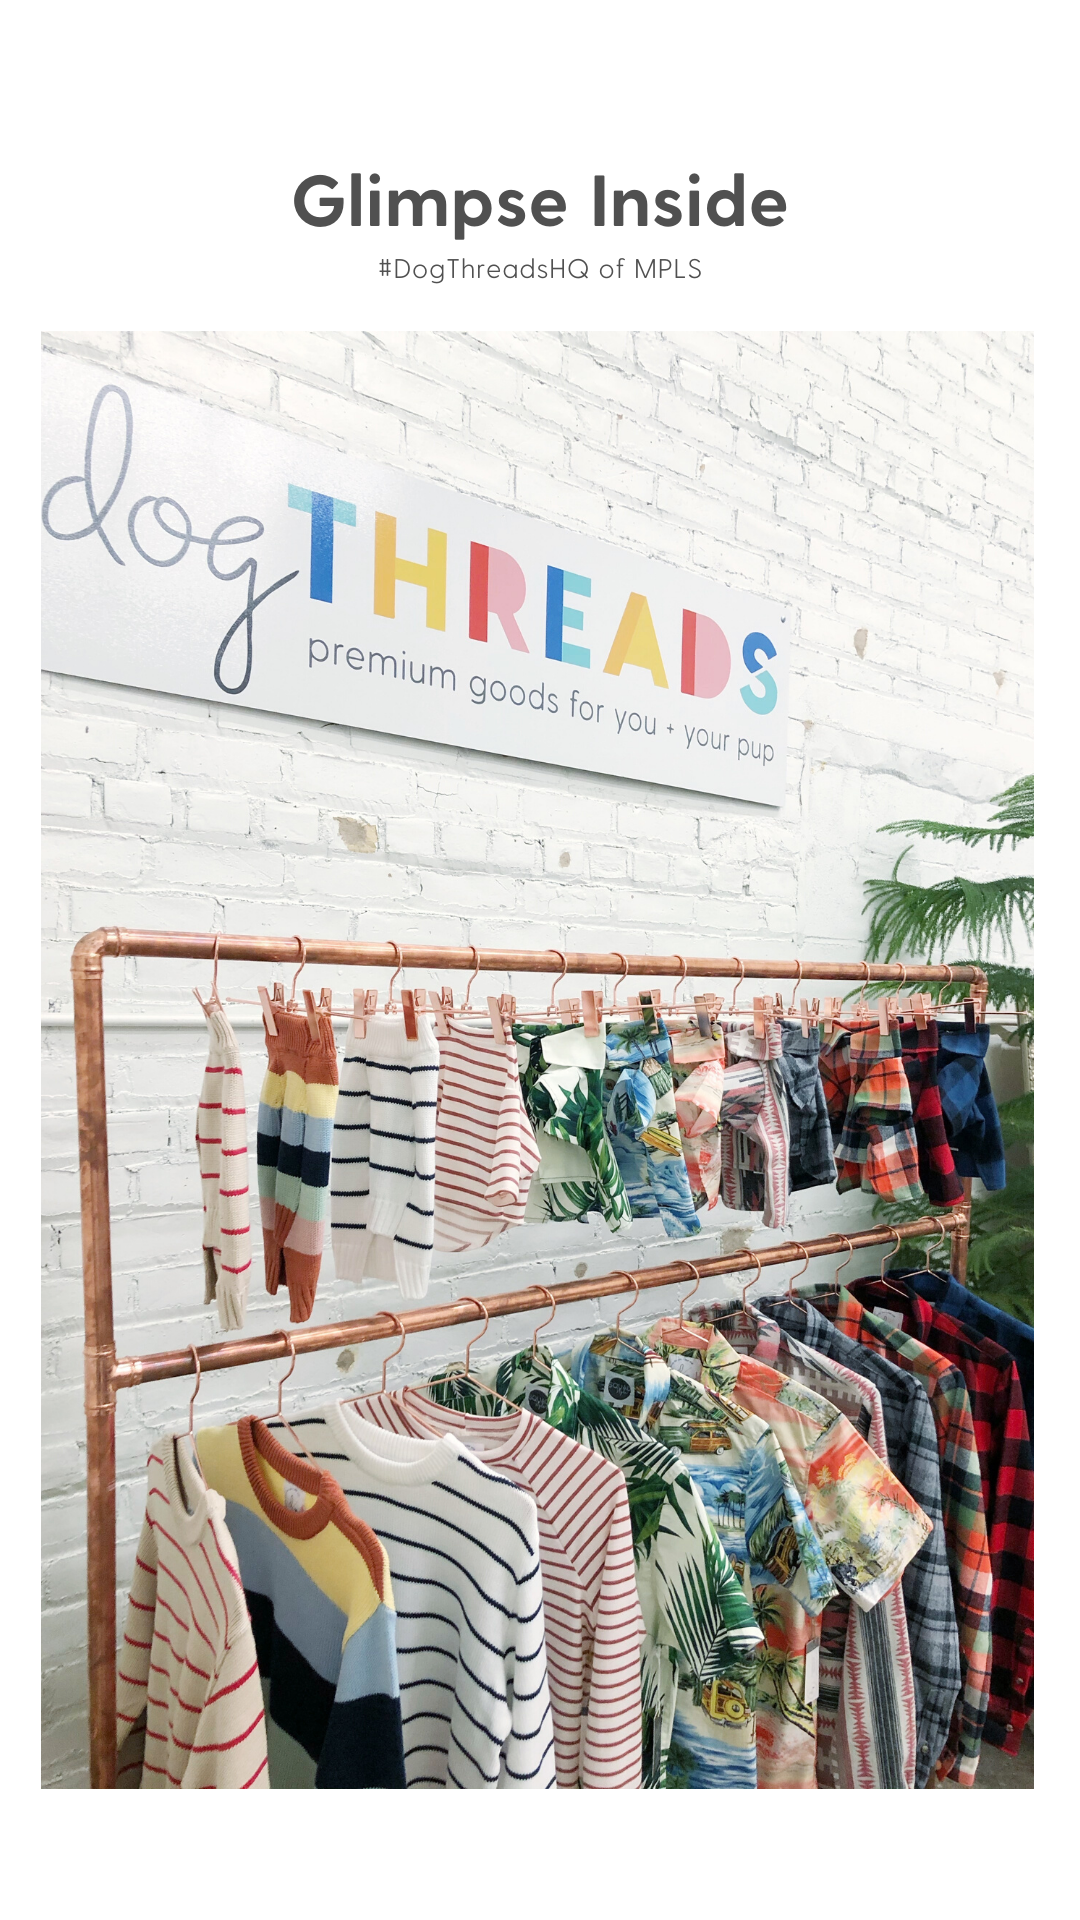 Dog Threads Headquarters in Minneapolis, Minnesota